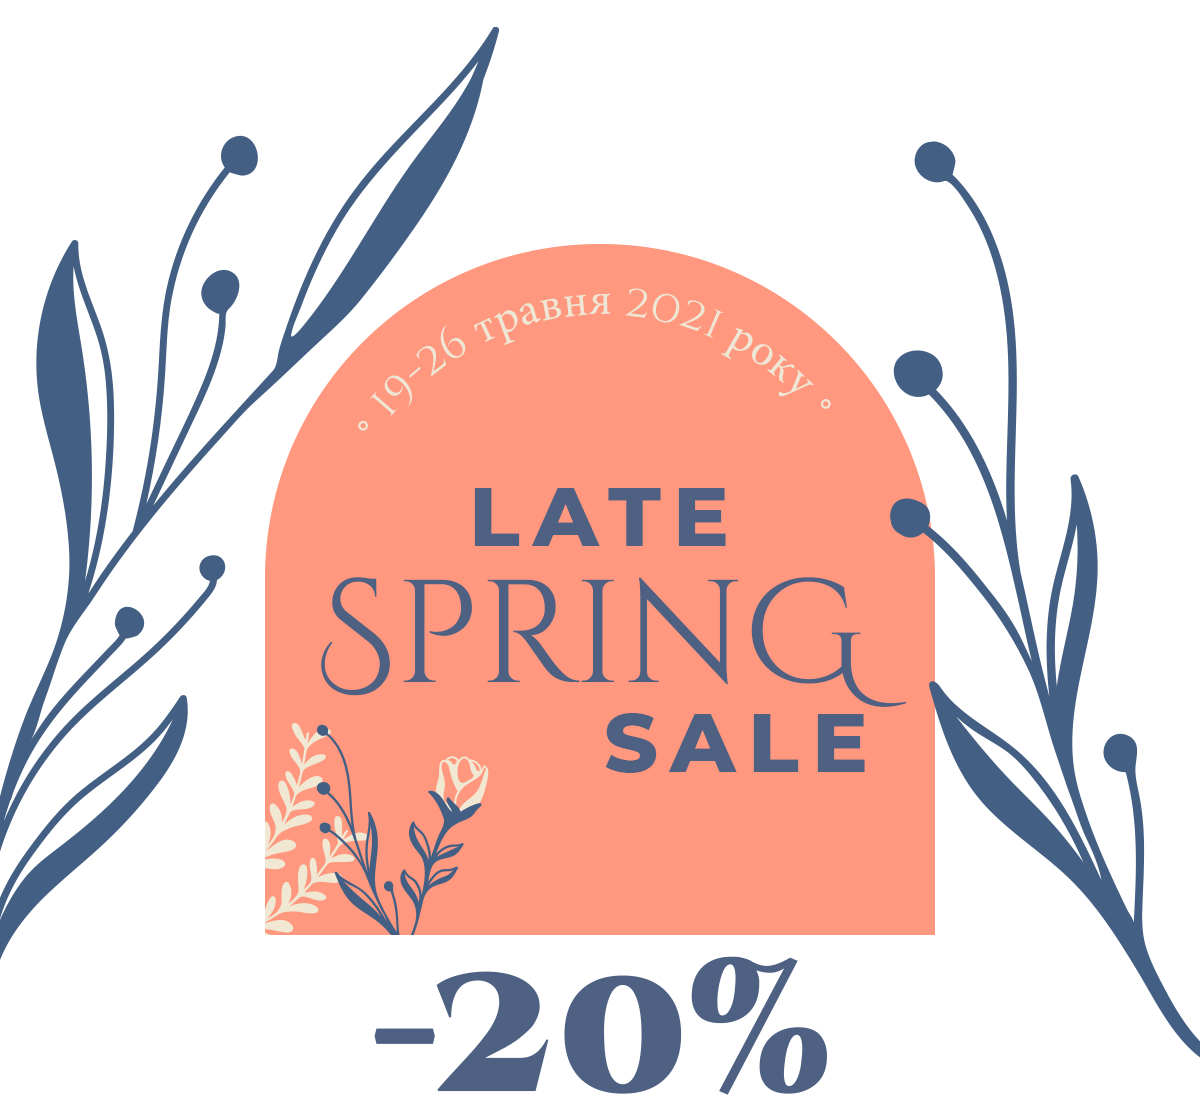 Late Spring Sale 2021